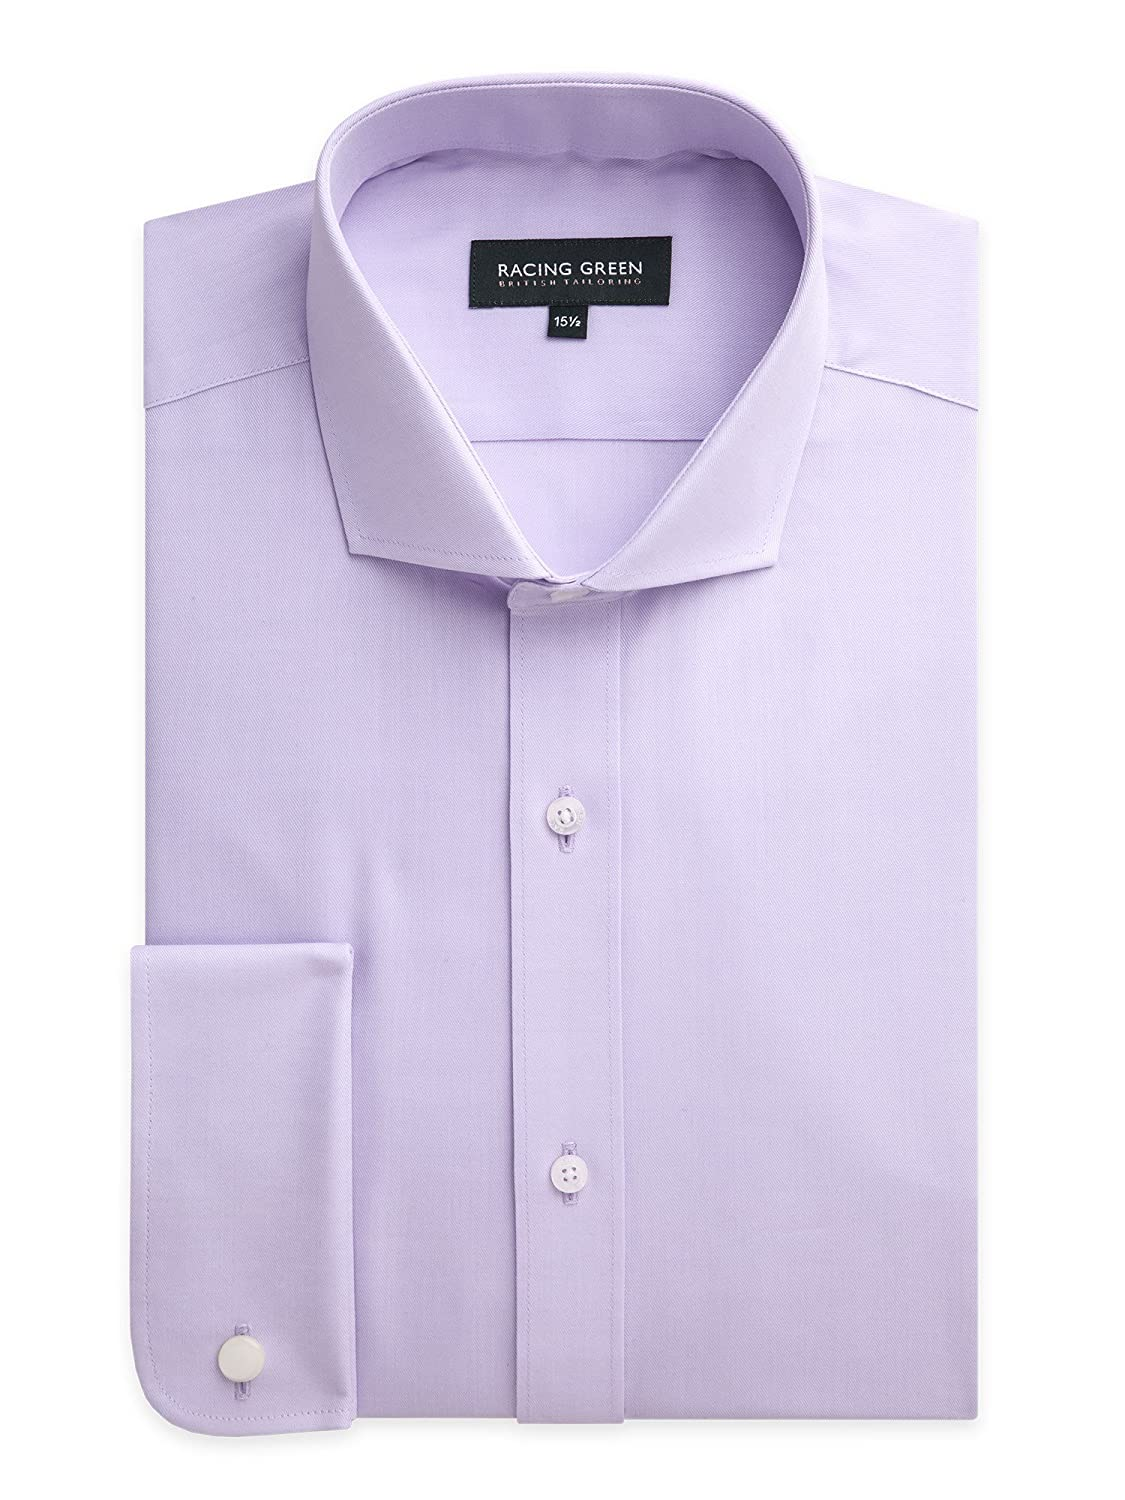 Racing Green Newgate Easy Care Twill Shirt - Tailored Fit Formal Shirt